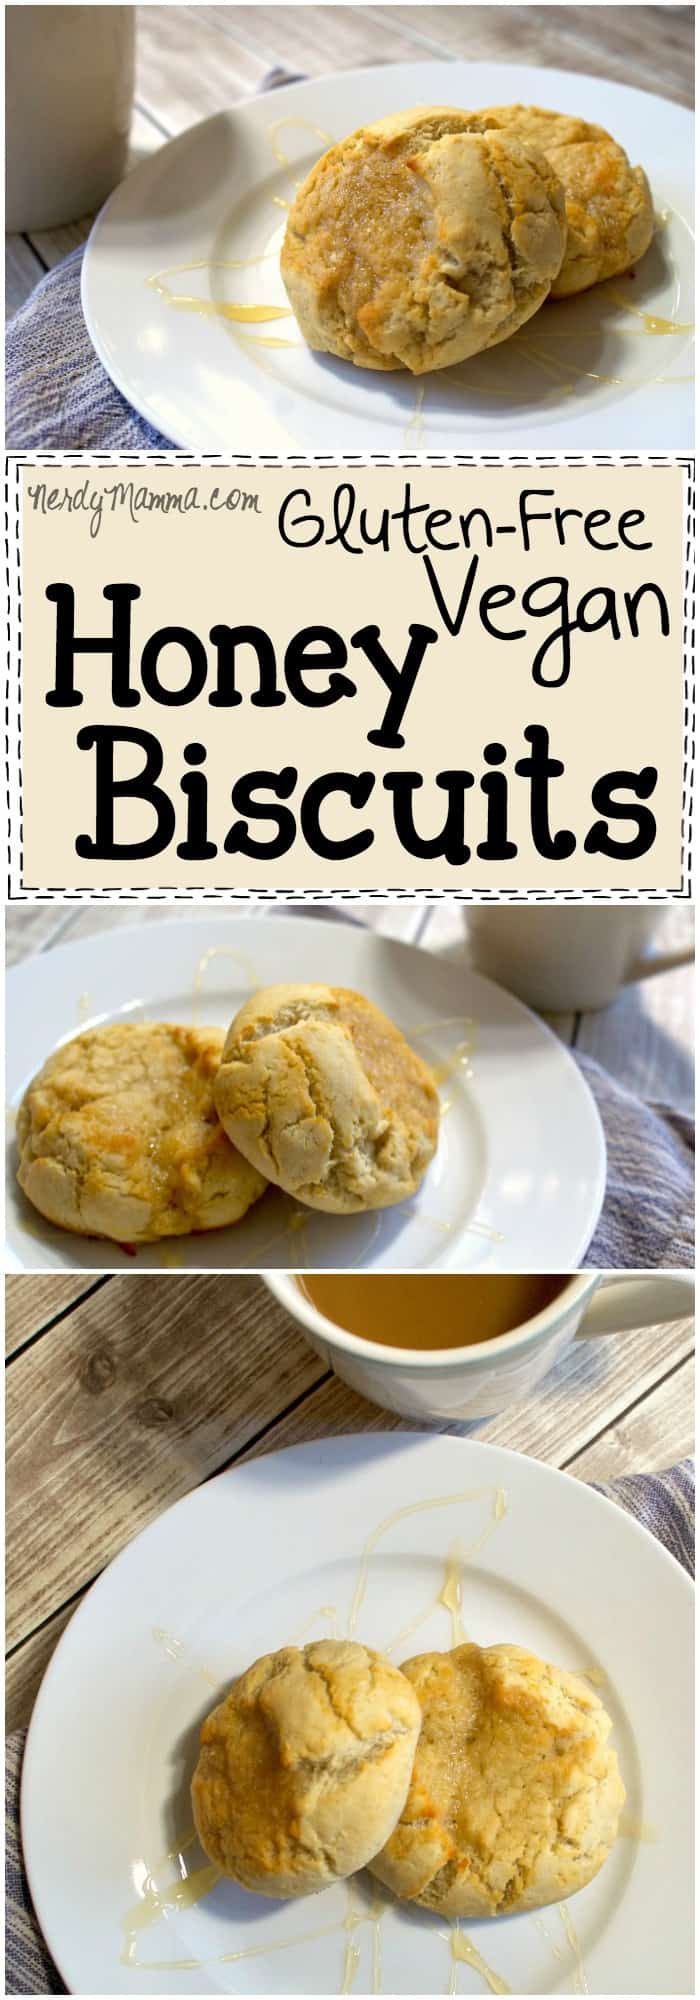 ... honey biscuits is SO AWESOME. It looks so easy and the biscuits